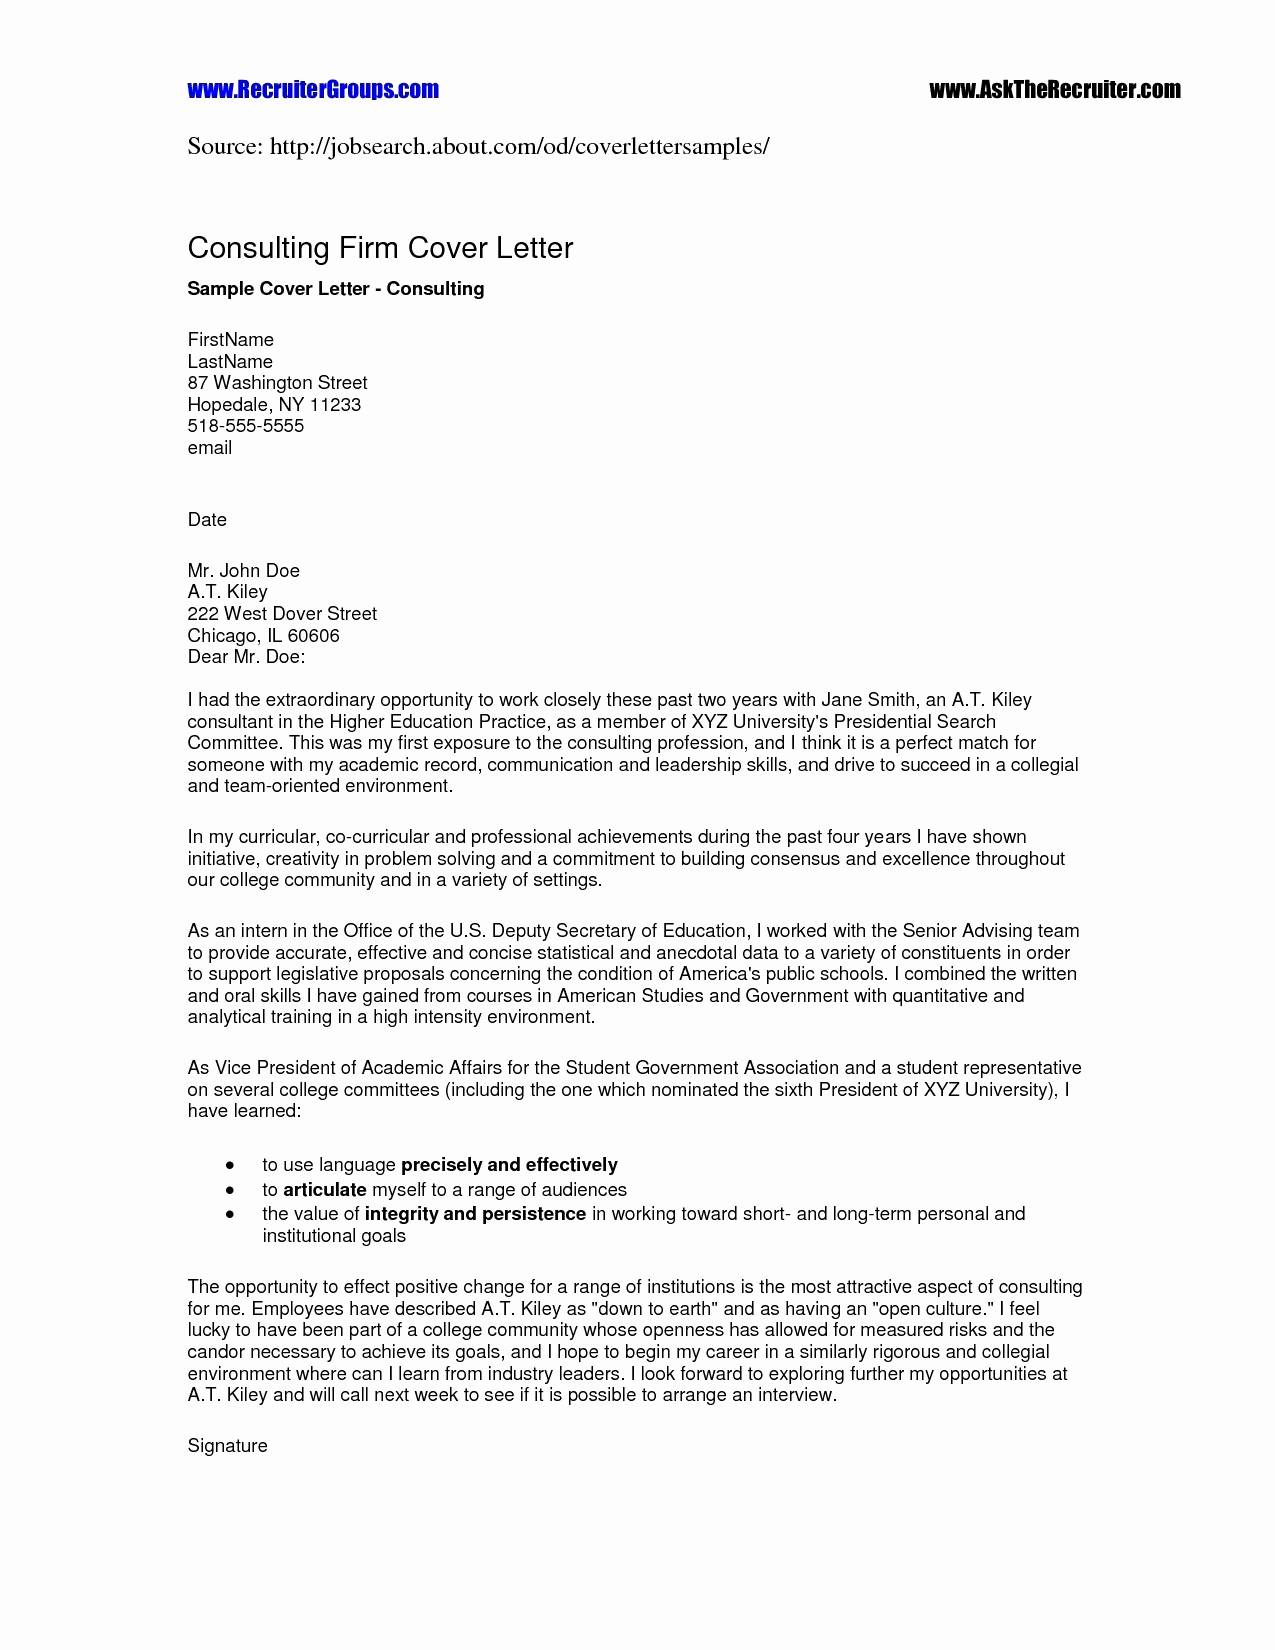 Letter Of Intent Template Microsoft Word - 15 Inspirational Marriage Certificate Template Microsoft Word